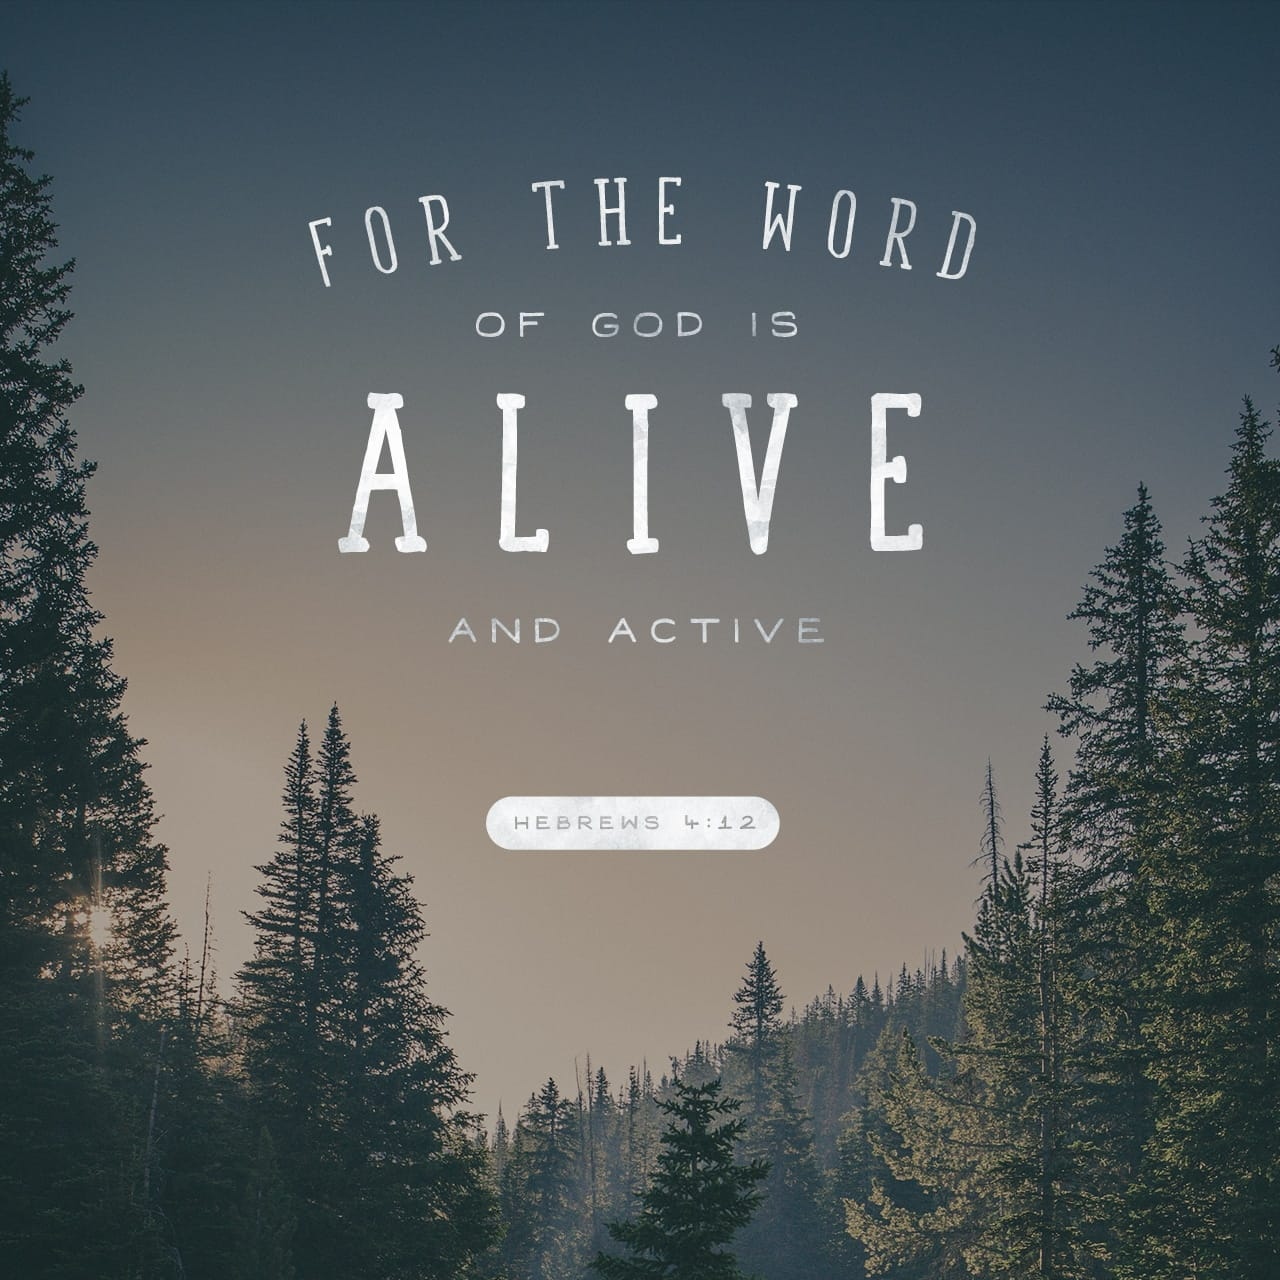 Hebrews 4:12 For the word of God is quick, and powerful, and sharper than any twoedged sword, piercing even to the dividing asunder of soul and spirit, and of the joints and marrow, and is a discerner of the thoug | King James Version (KJV)